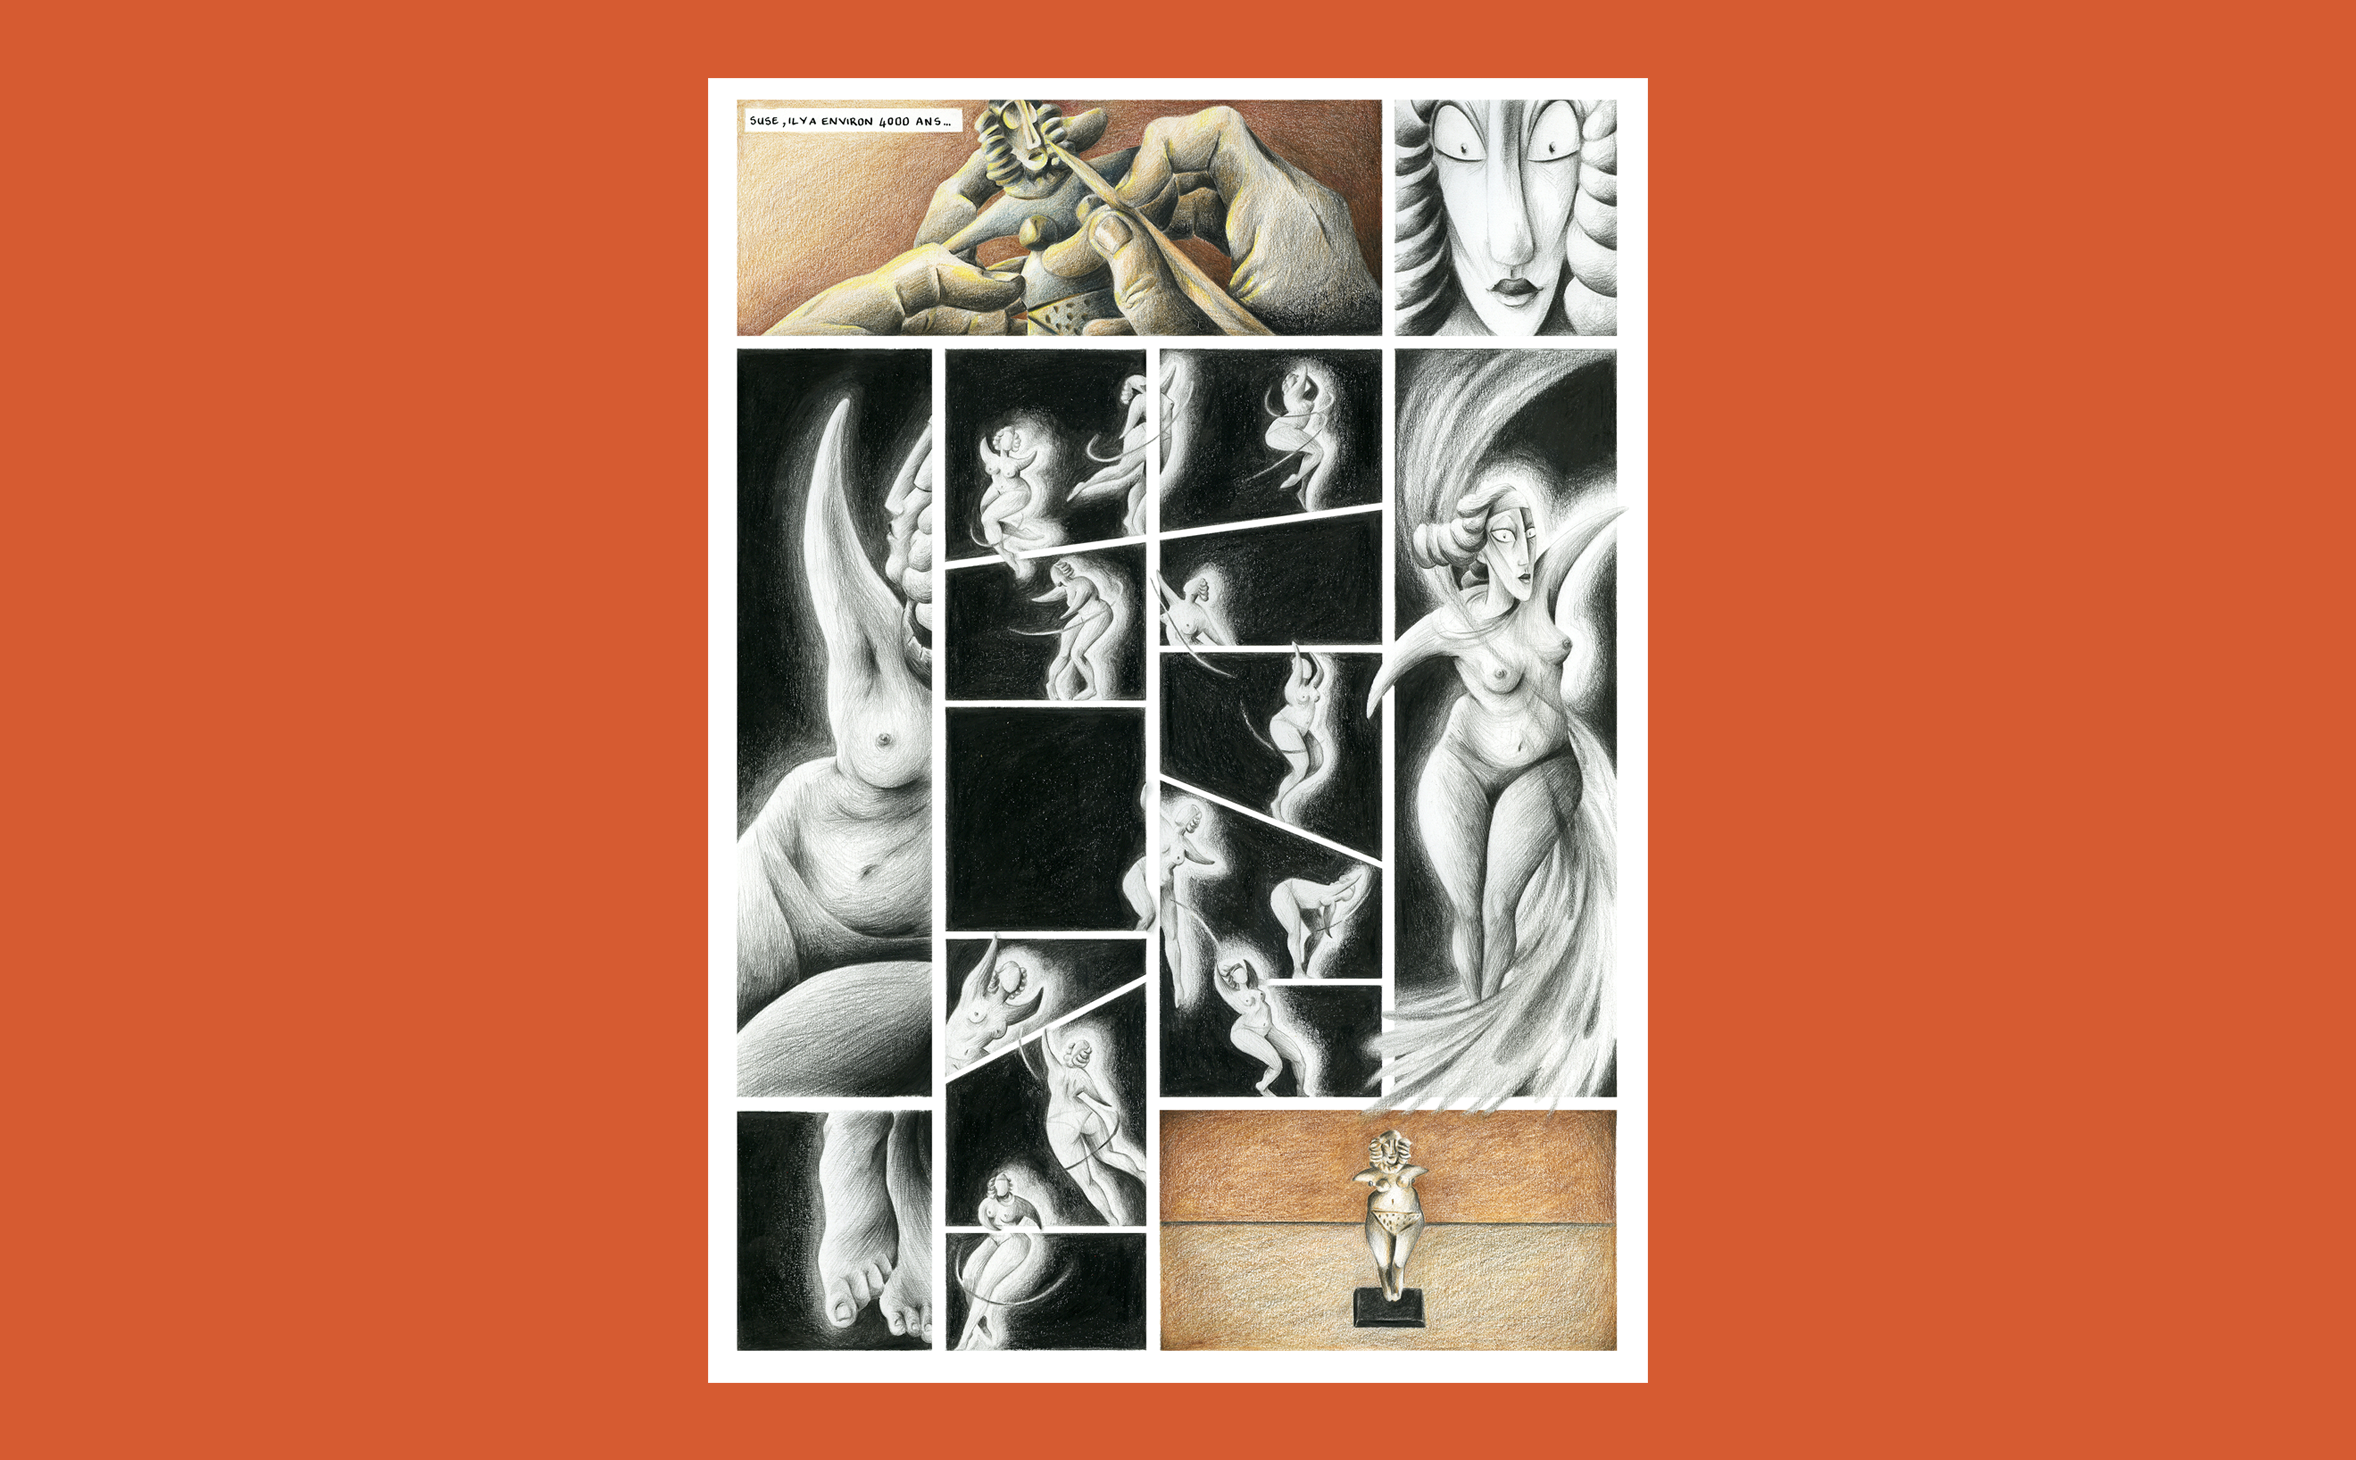 Susette the dancing statuette, short comic for the Louvre Museum